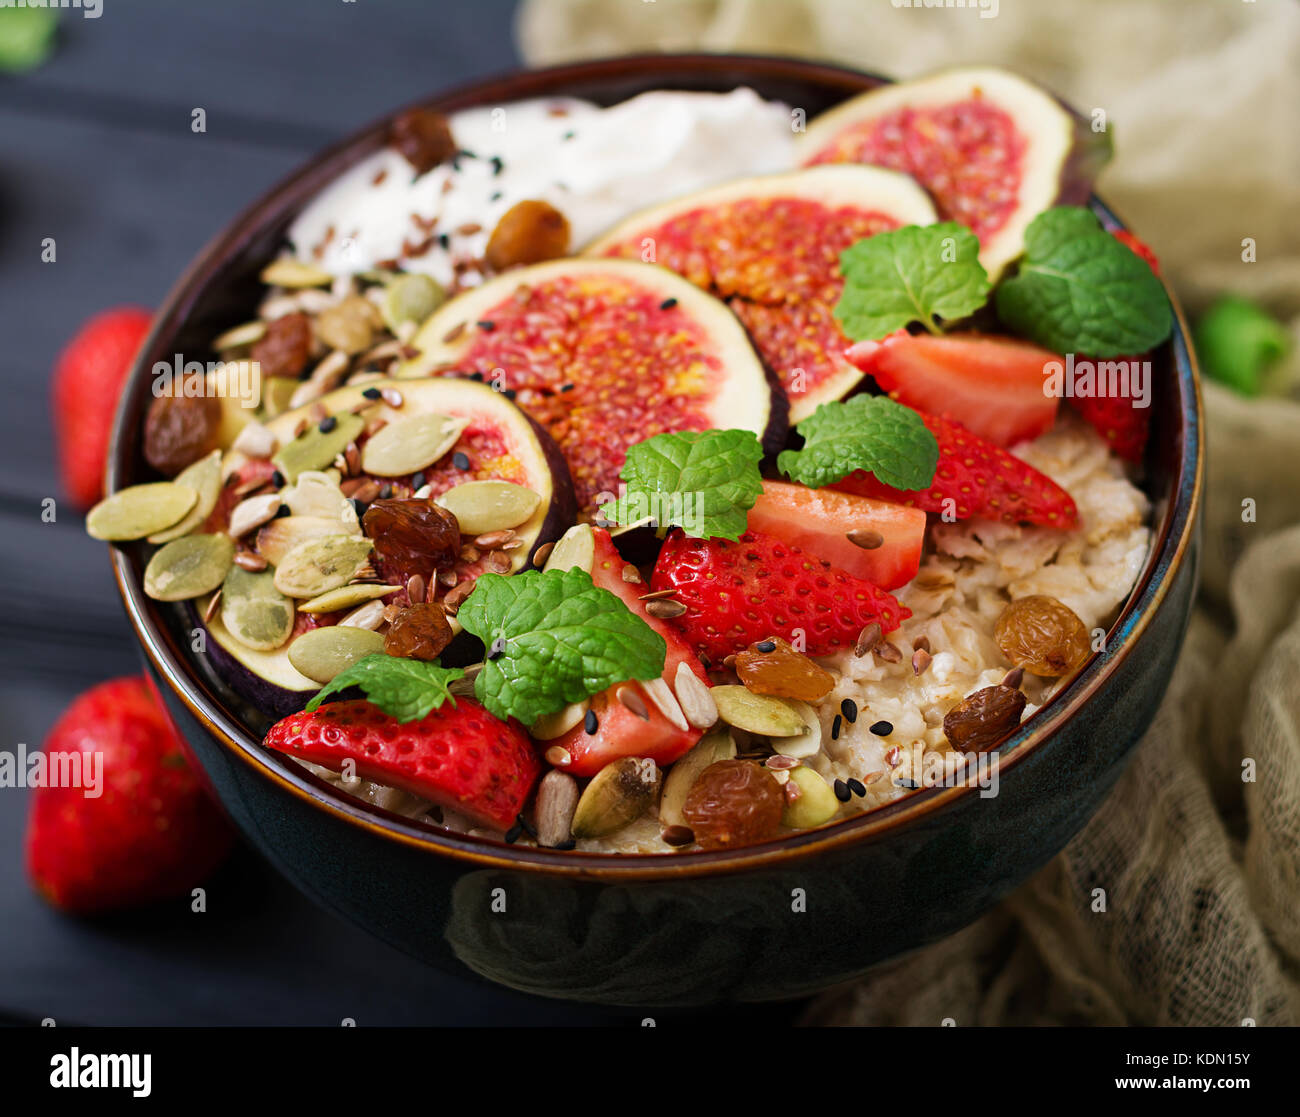 Delicious and healthy oatmeal with figs, seeds, strawberry and yogurt. Healthy breakfast. Fitness food. Proper nutrition. - Stock Image